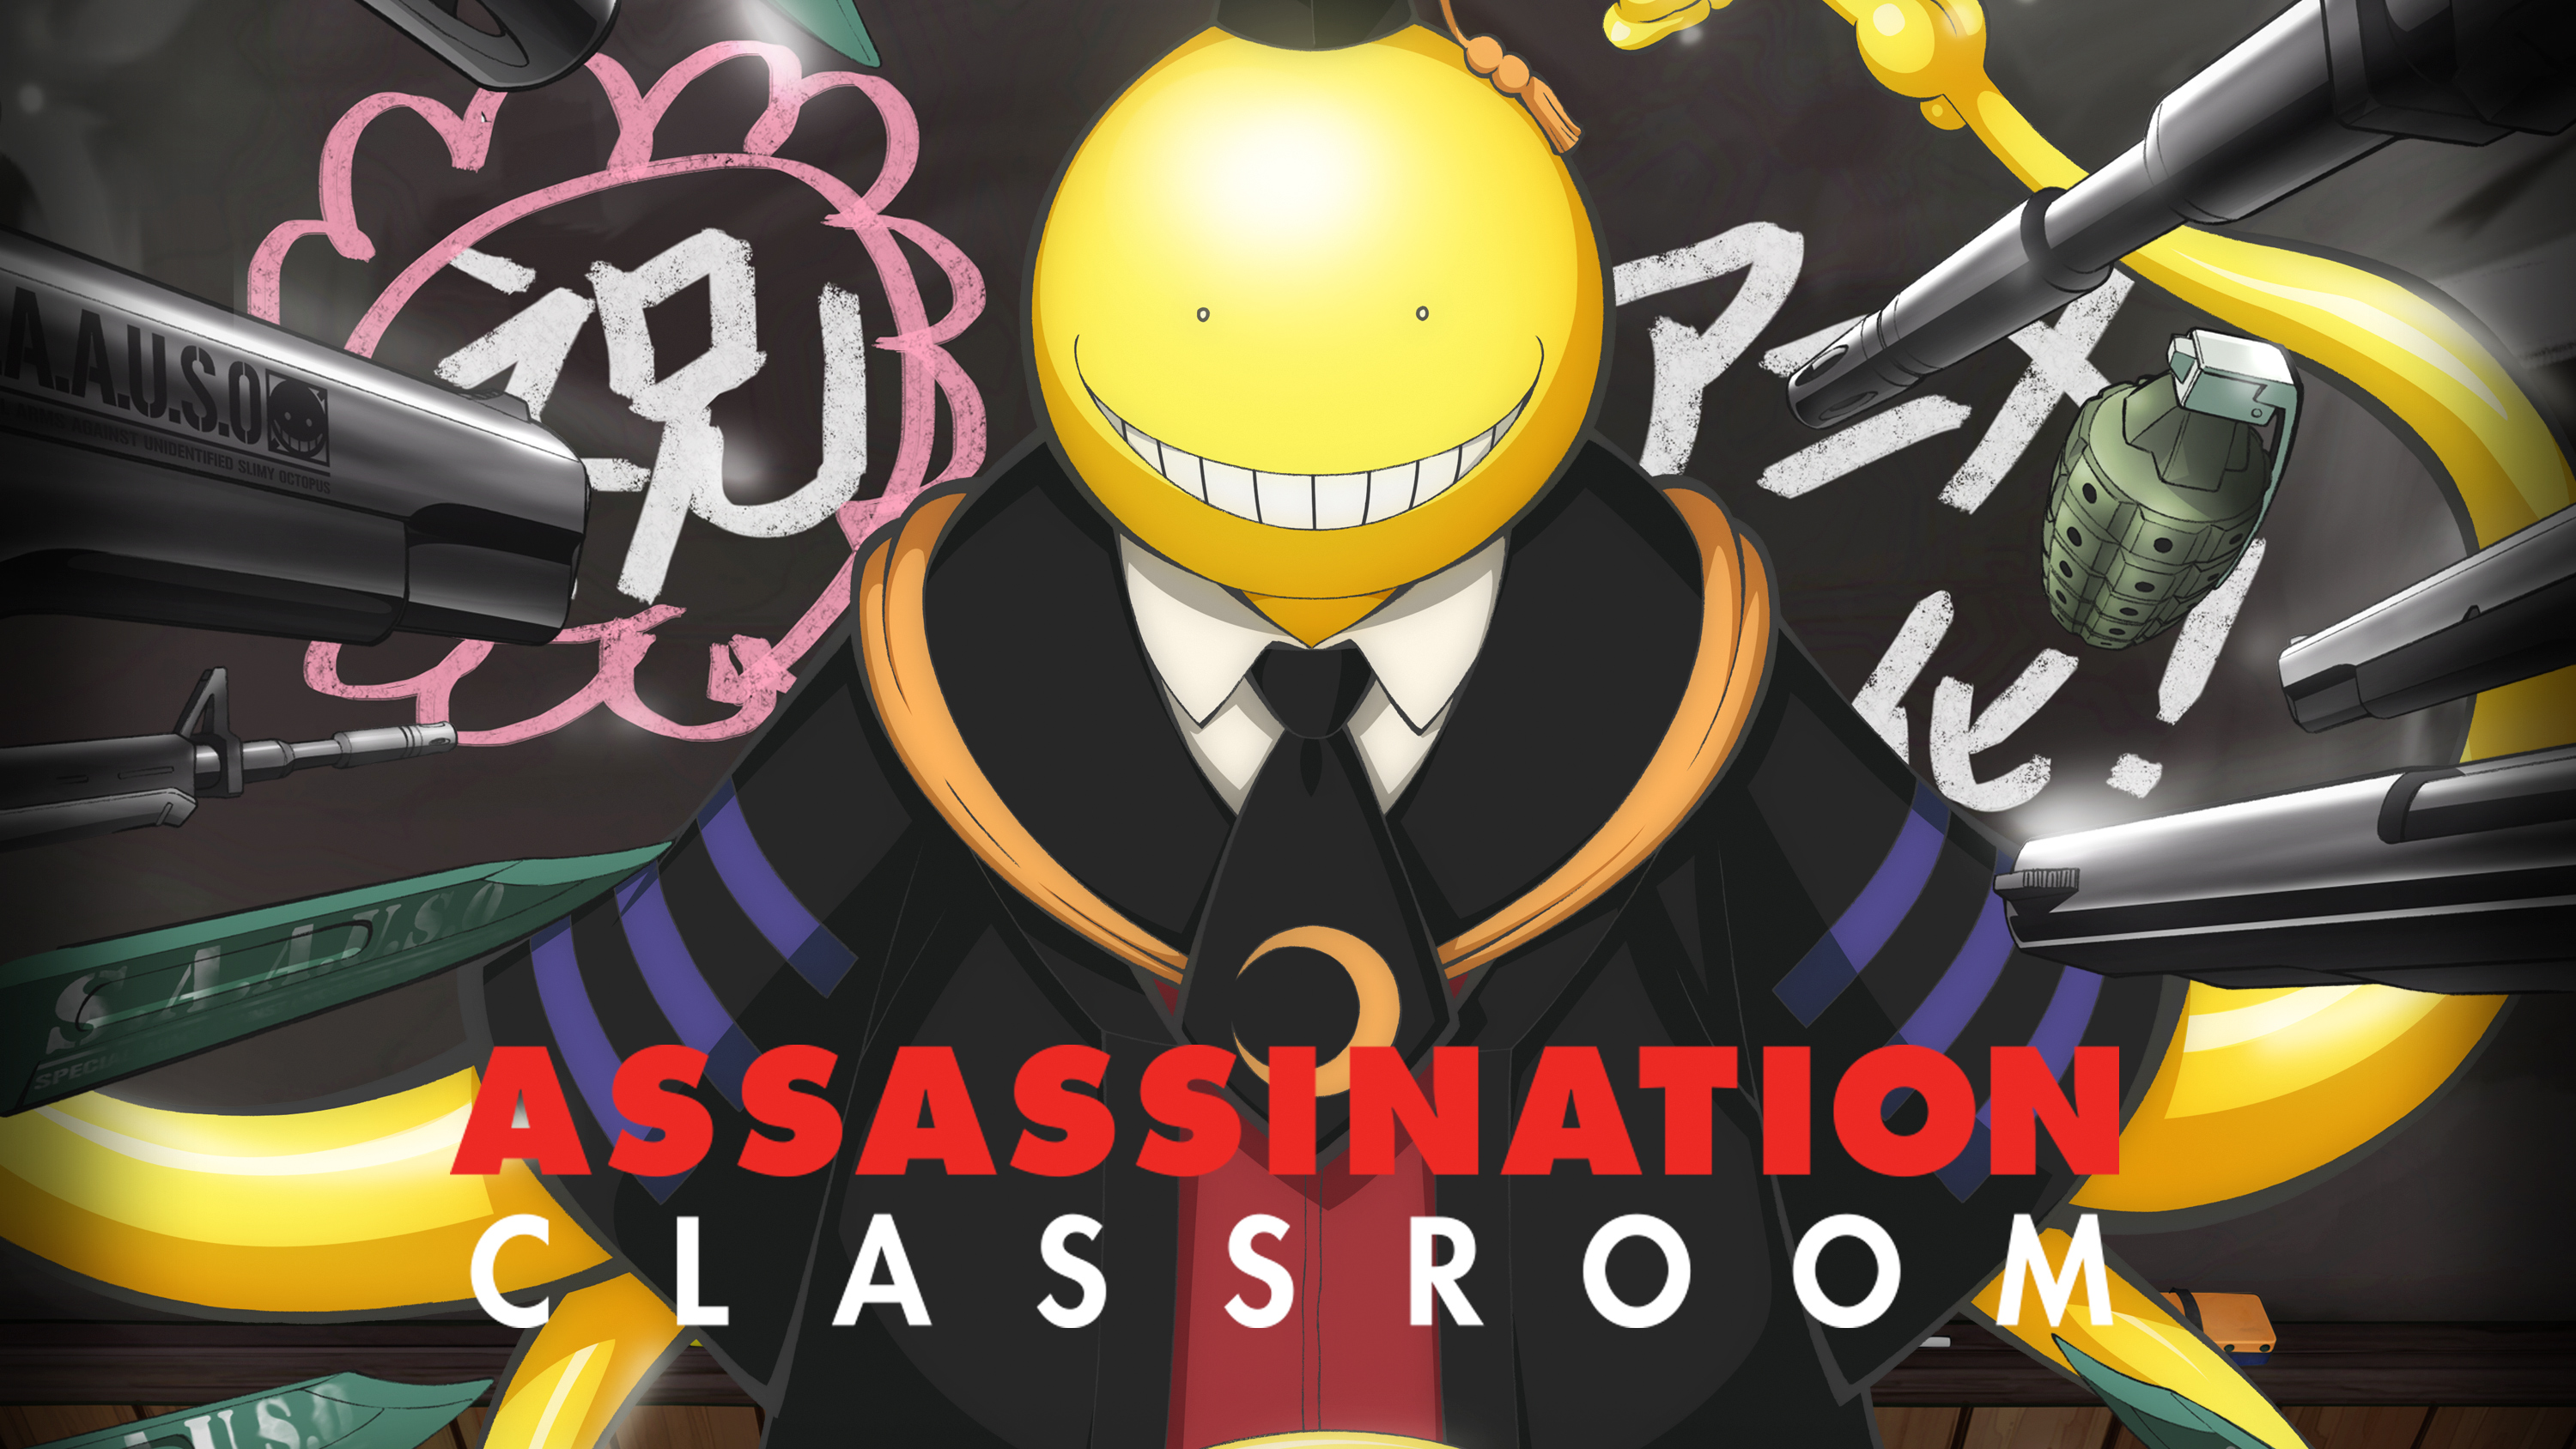 Assassination classroom DB boxset released